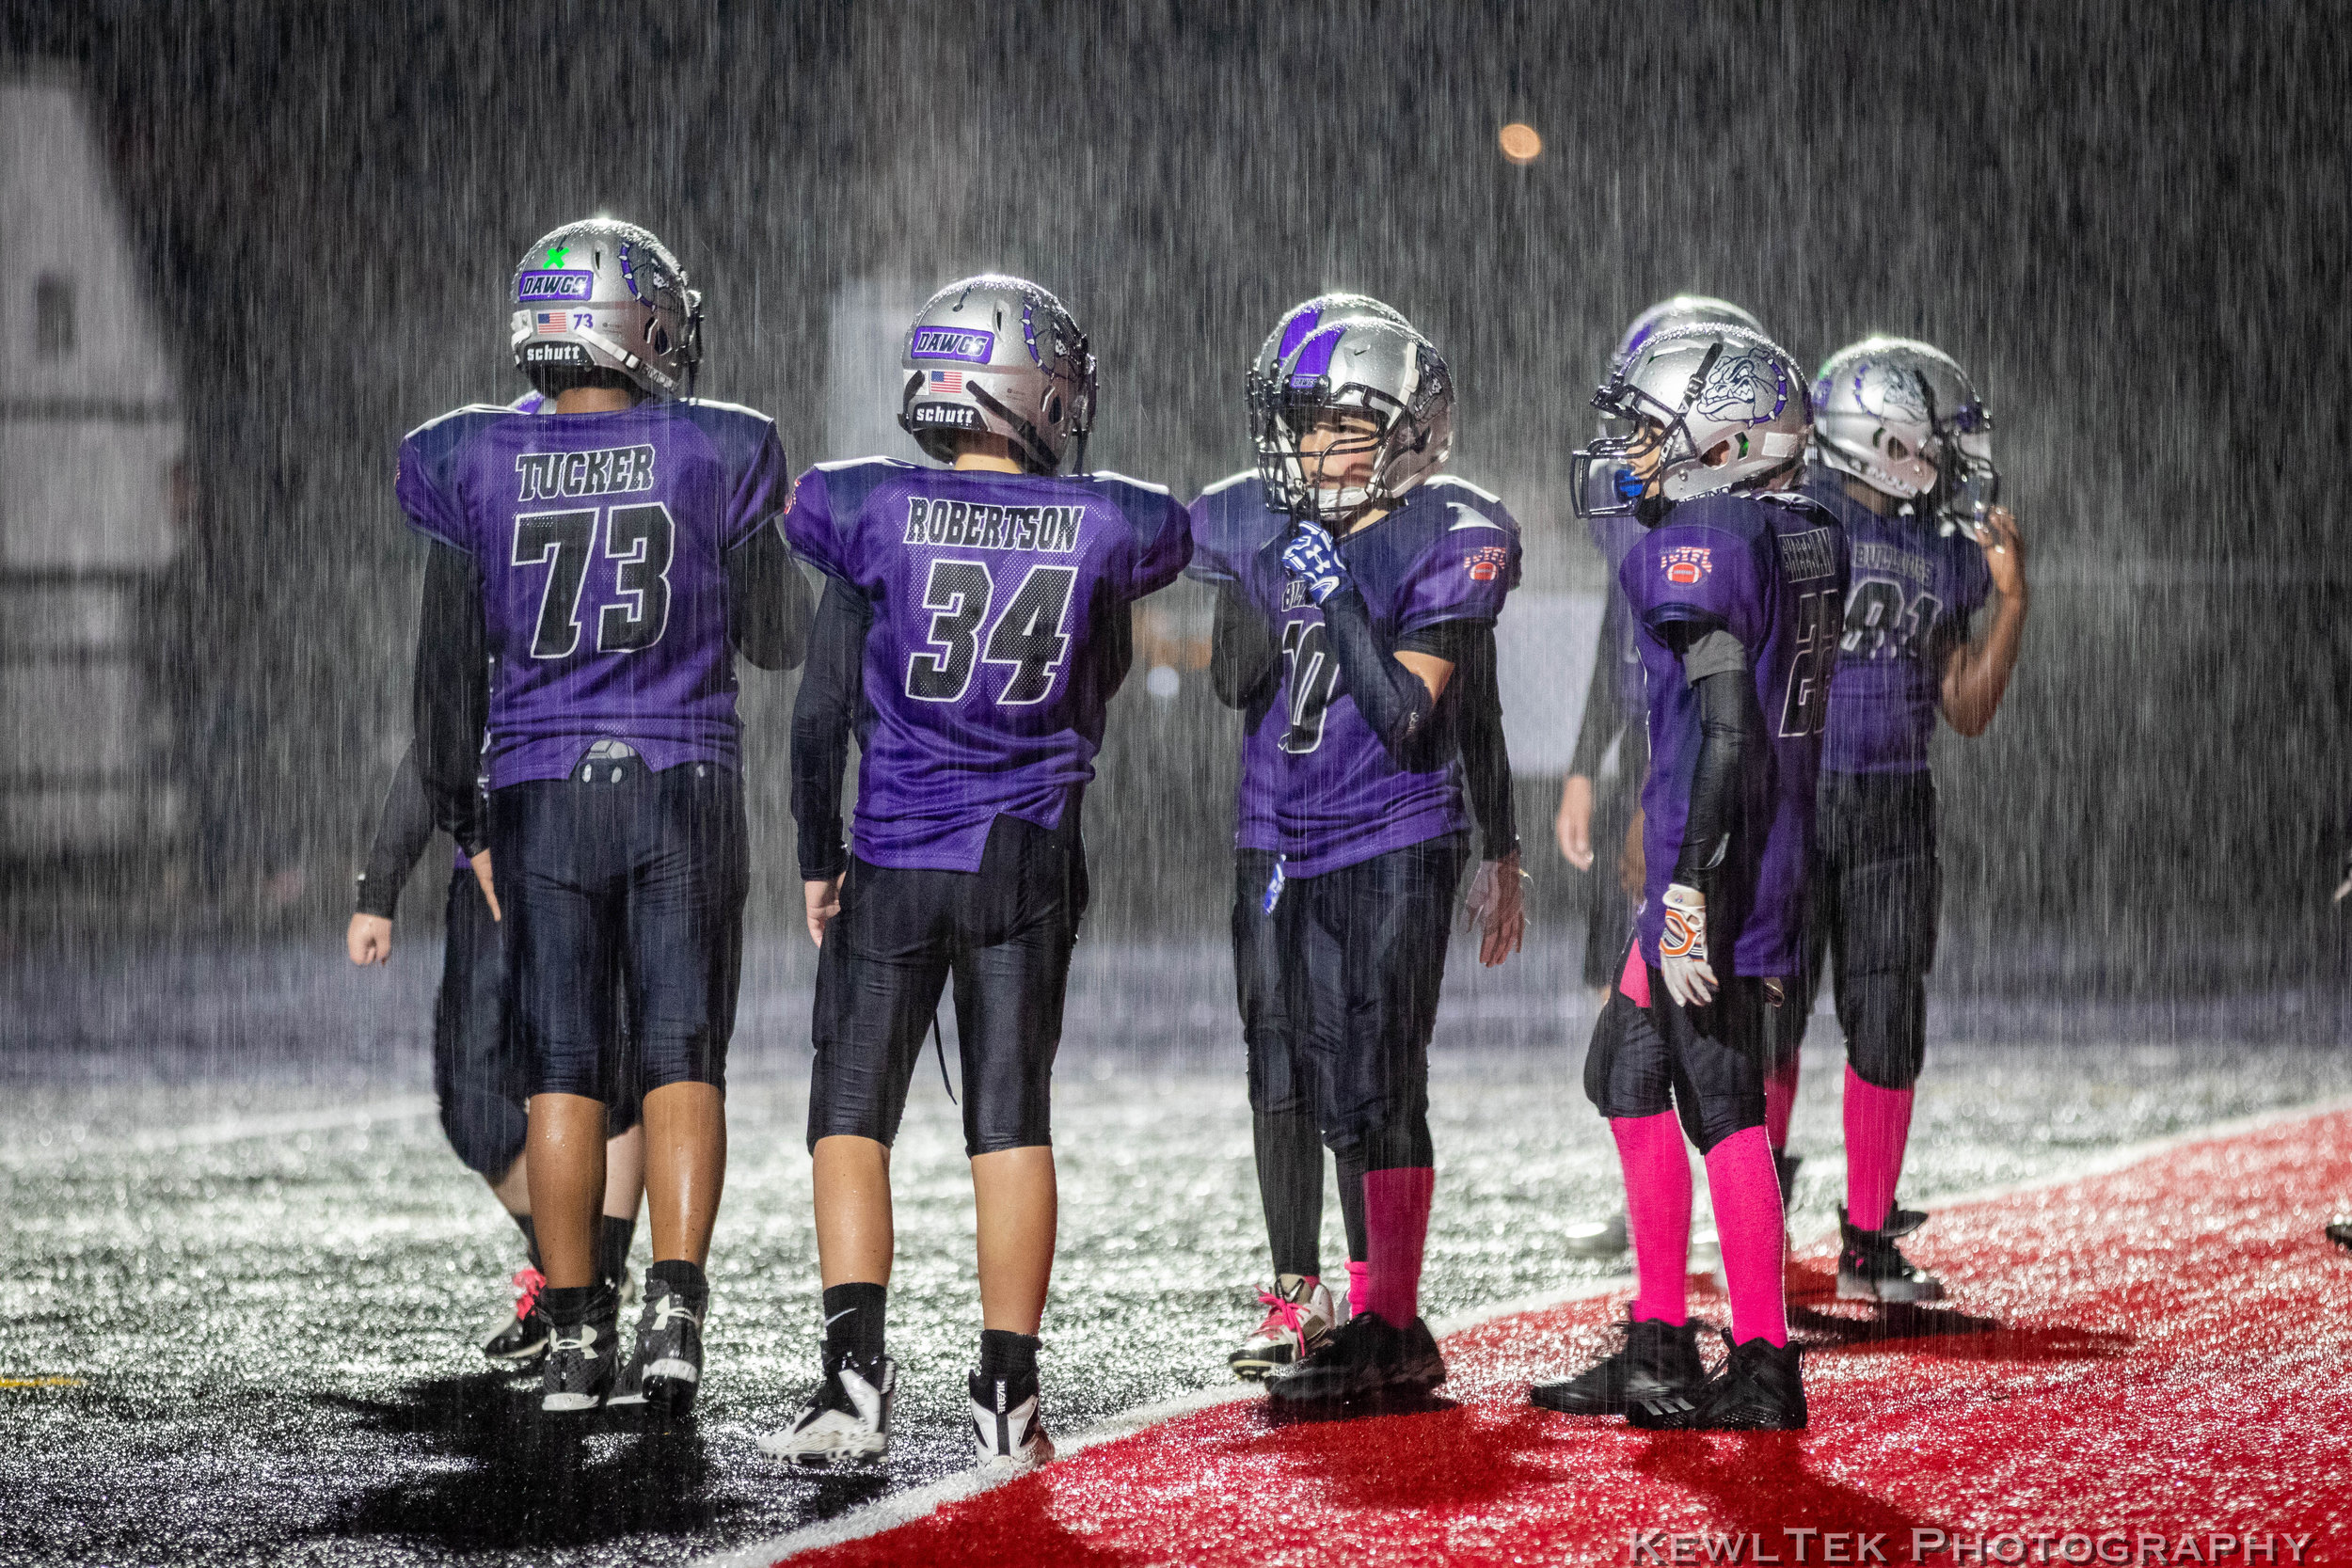 Kids Sports in a Downpour